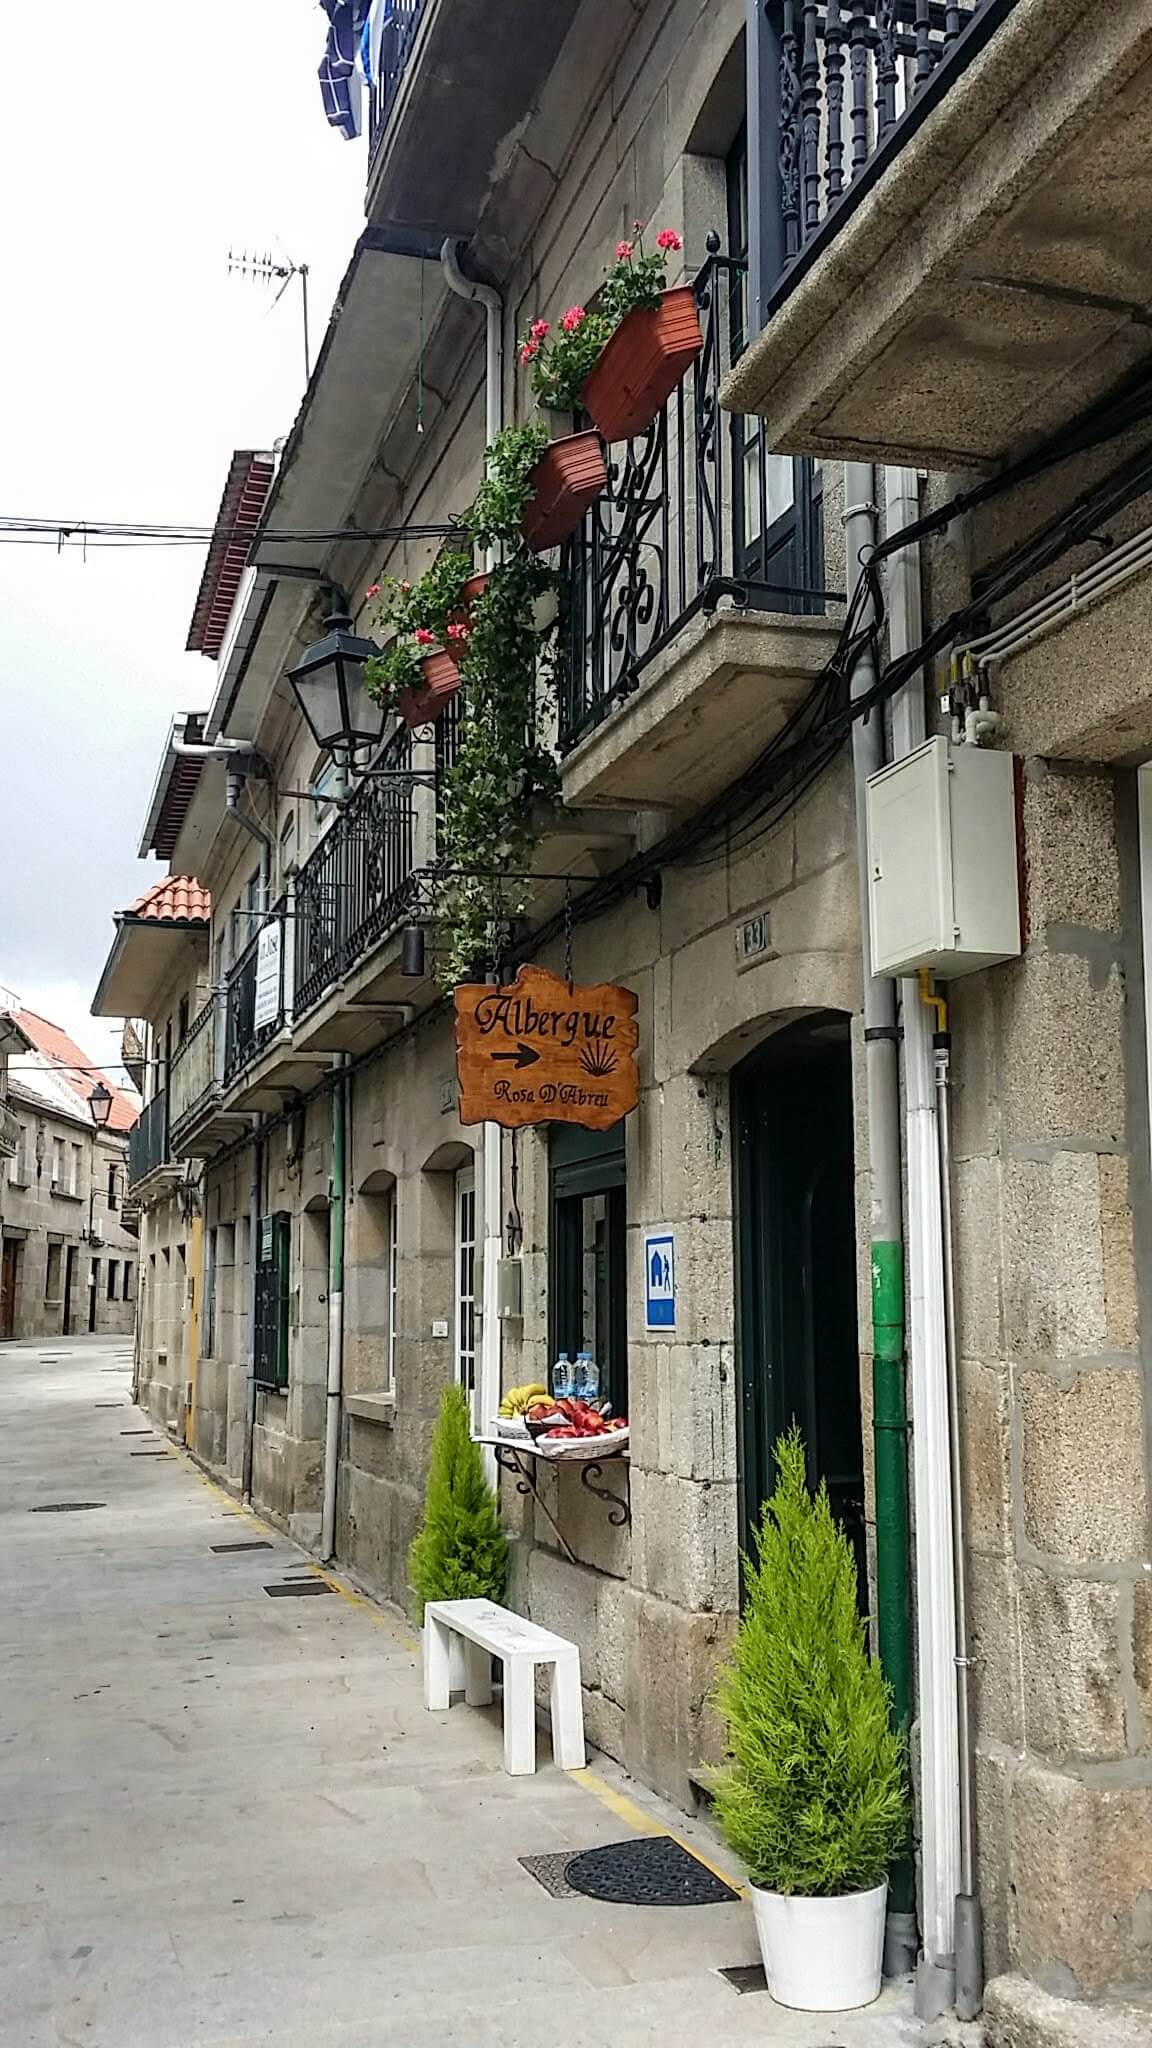 The Albergue, Rosa D'Abreu, Redondela, Spain on day twenty-one of the Camino Portugués